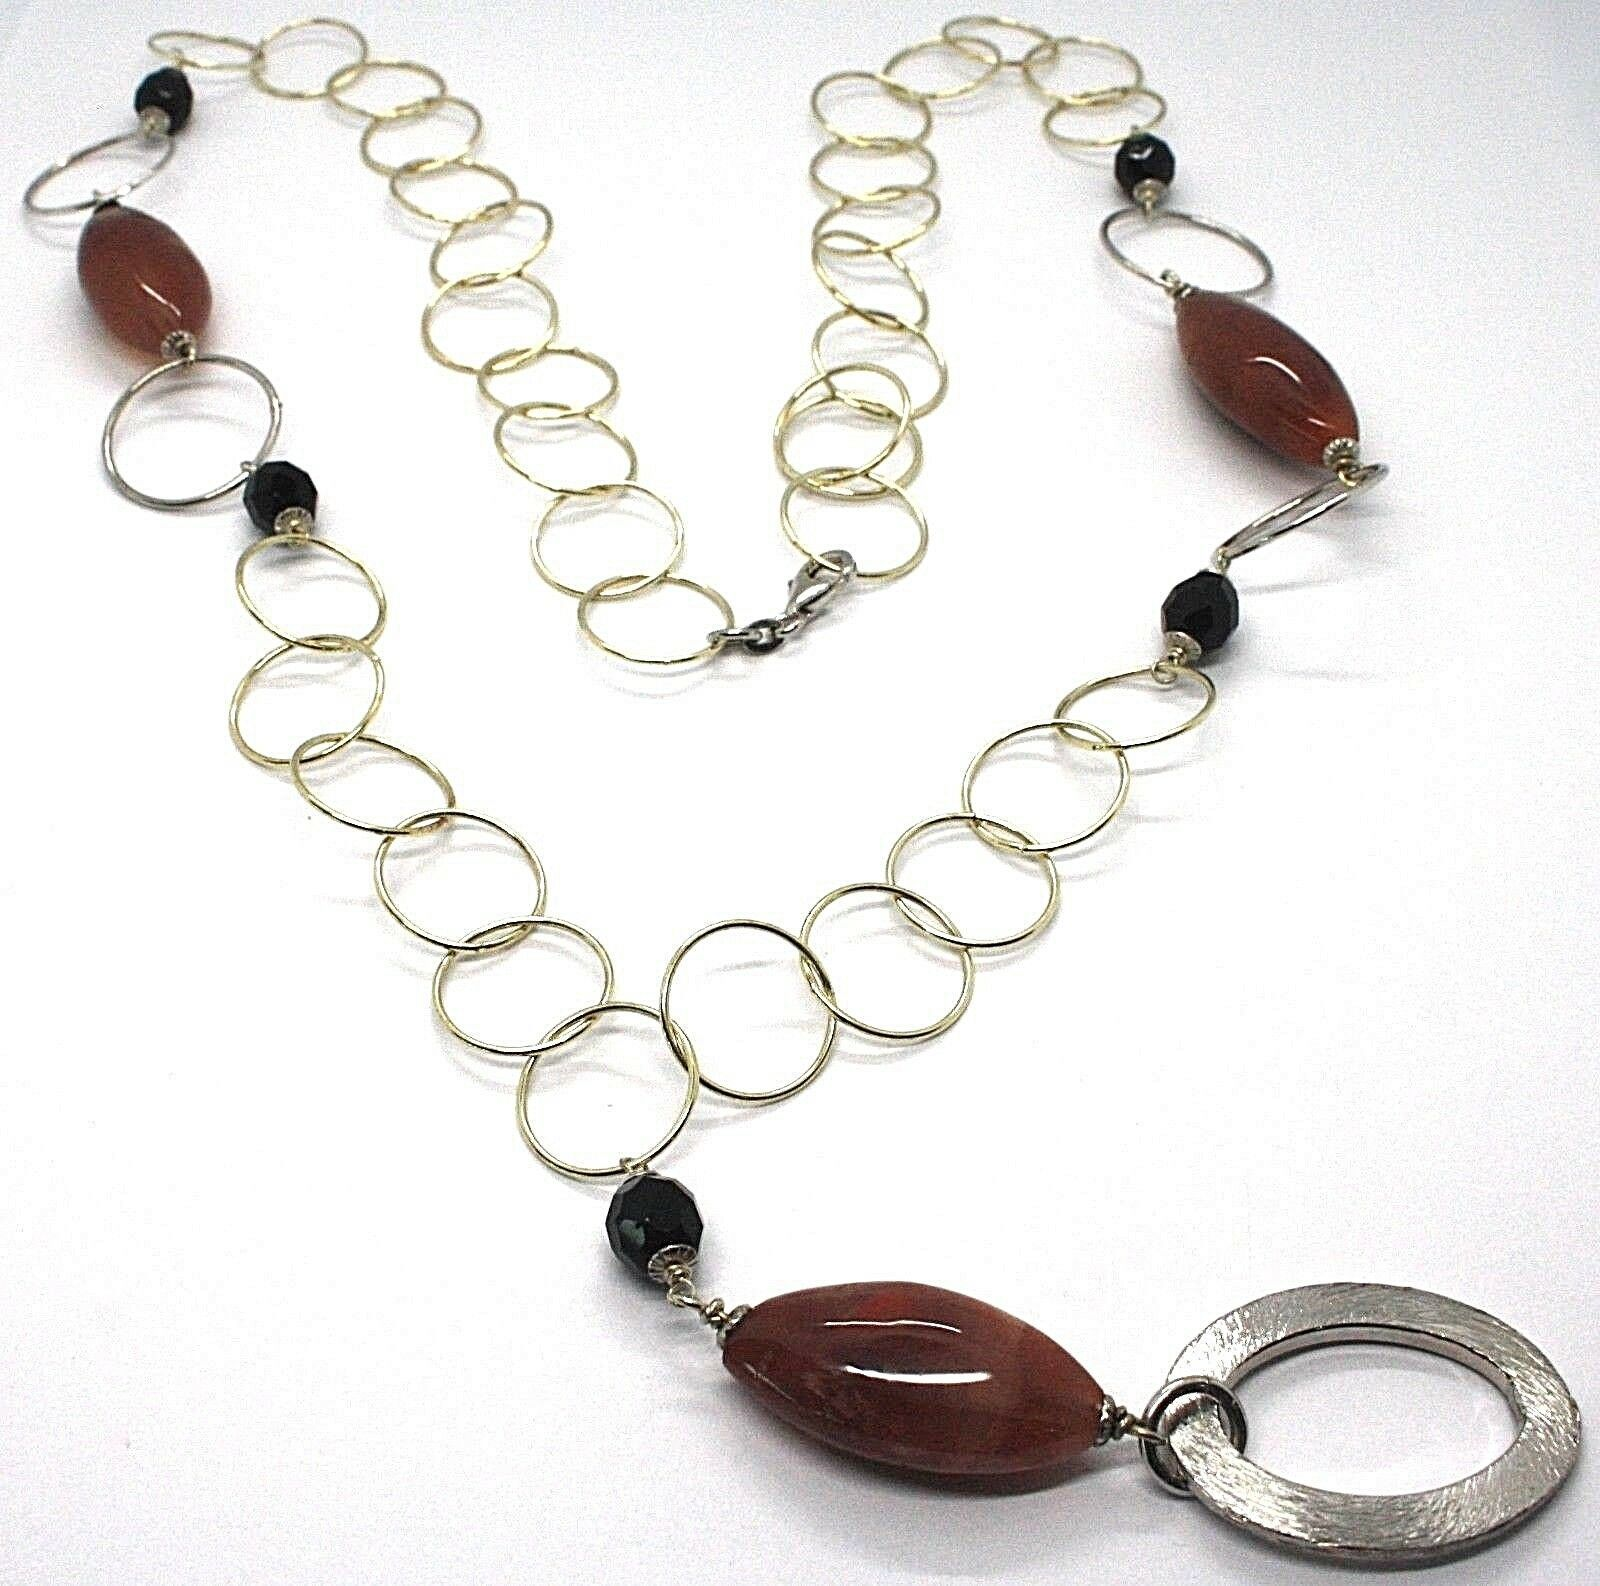 Necklace Silver 925, Jasper Oval, Length 80 cm, Circles Large, Pendant